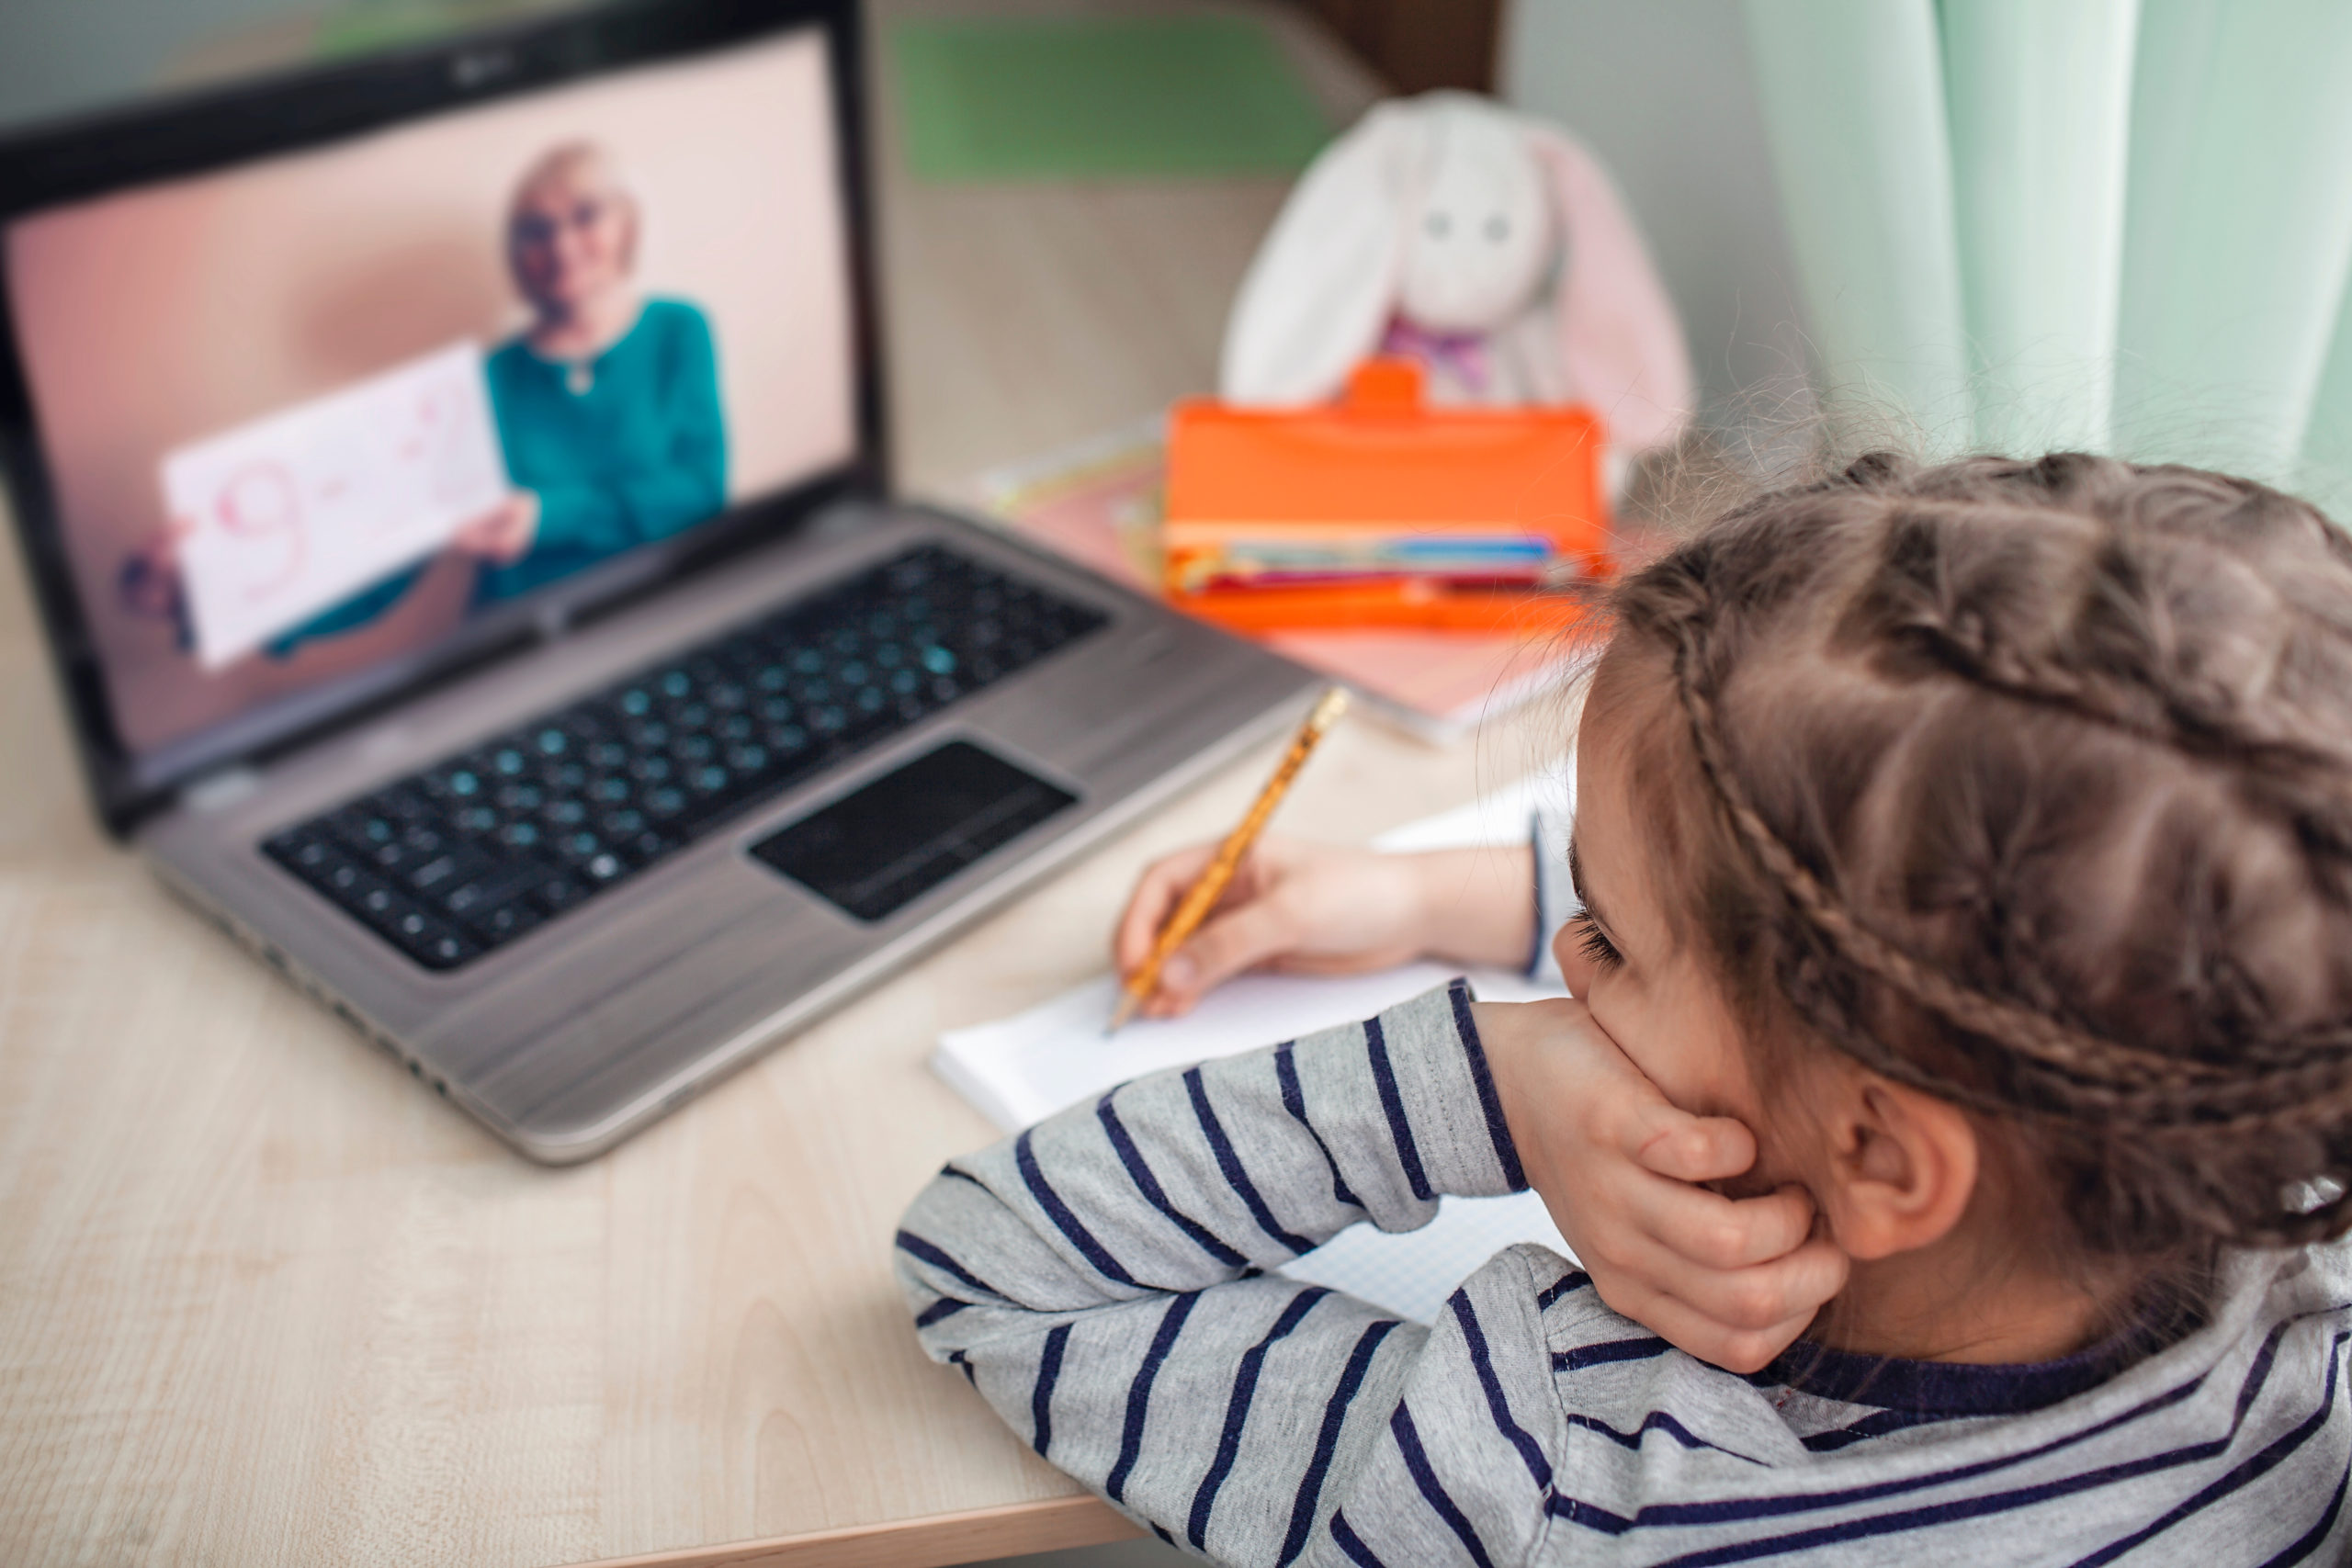 Remote learning resources can help get through the quarantine slump.